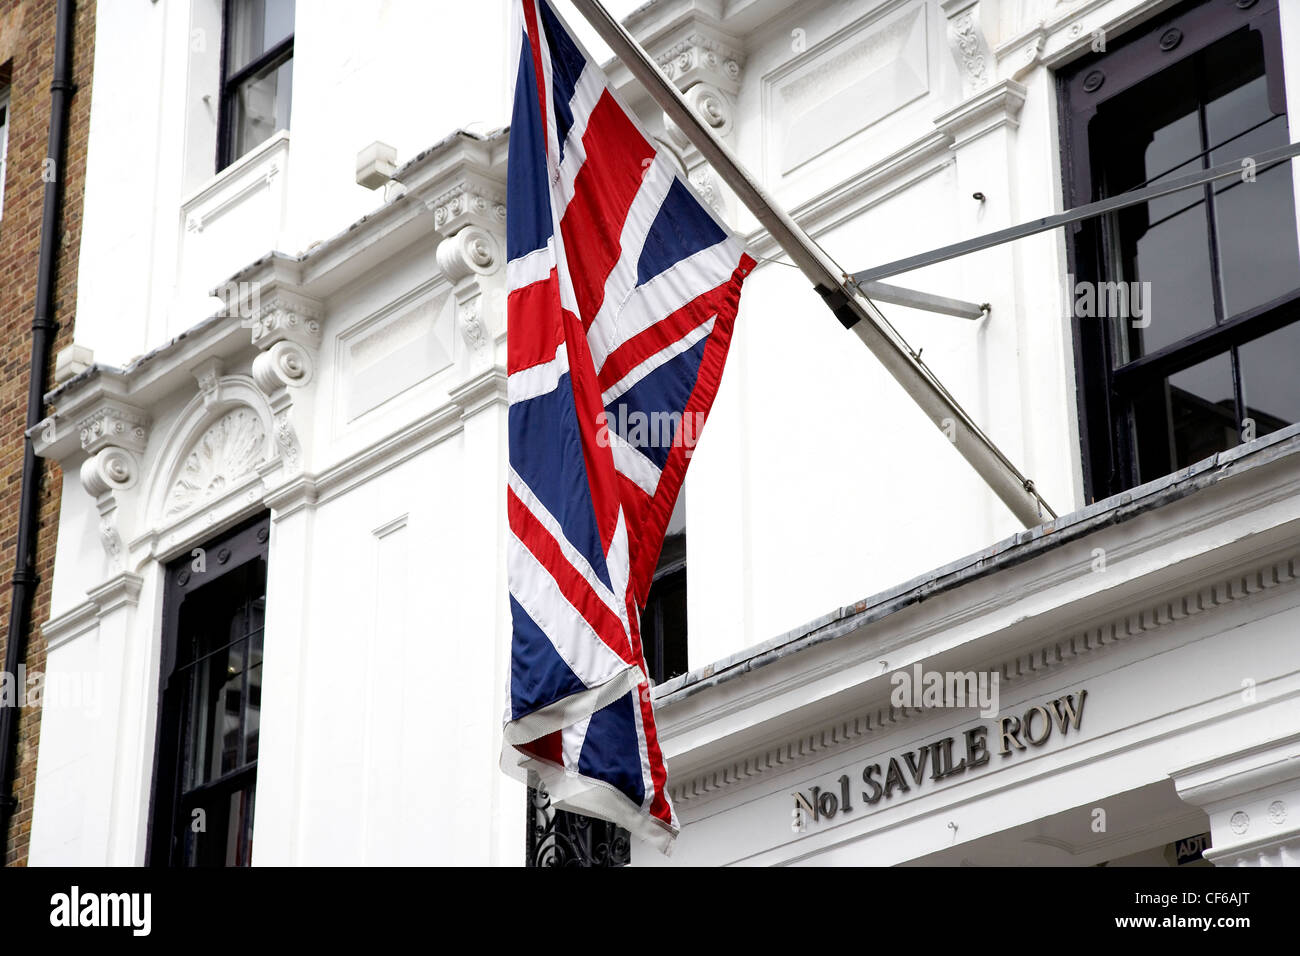 A Union Jack flag hangs above the entrance to number 1 Saville Row in London. - Stock Image